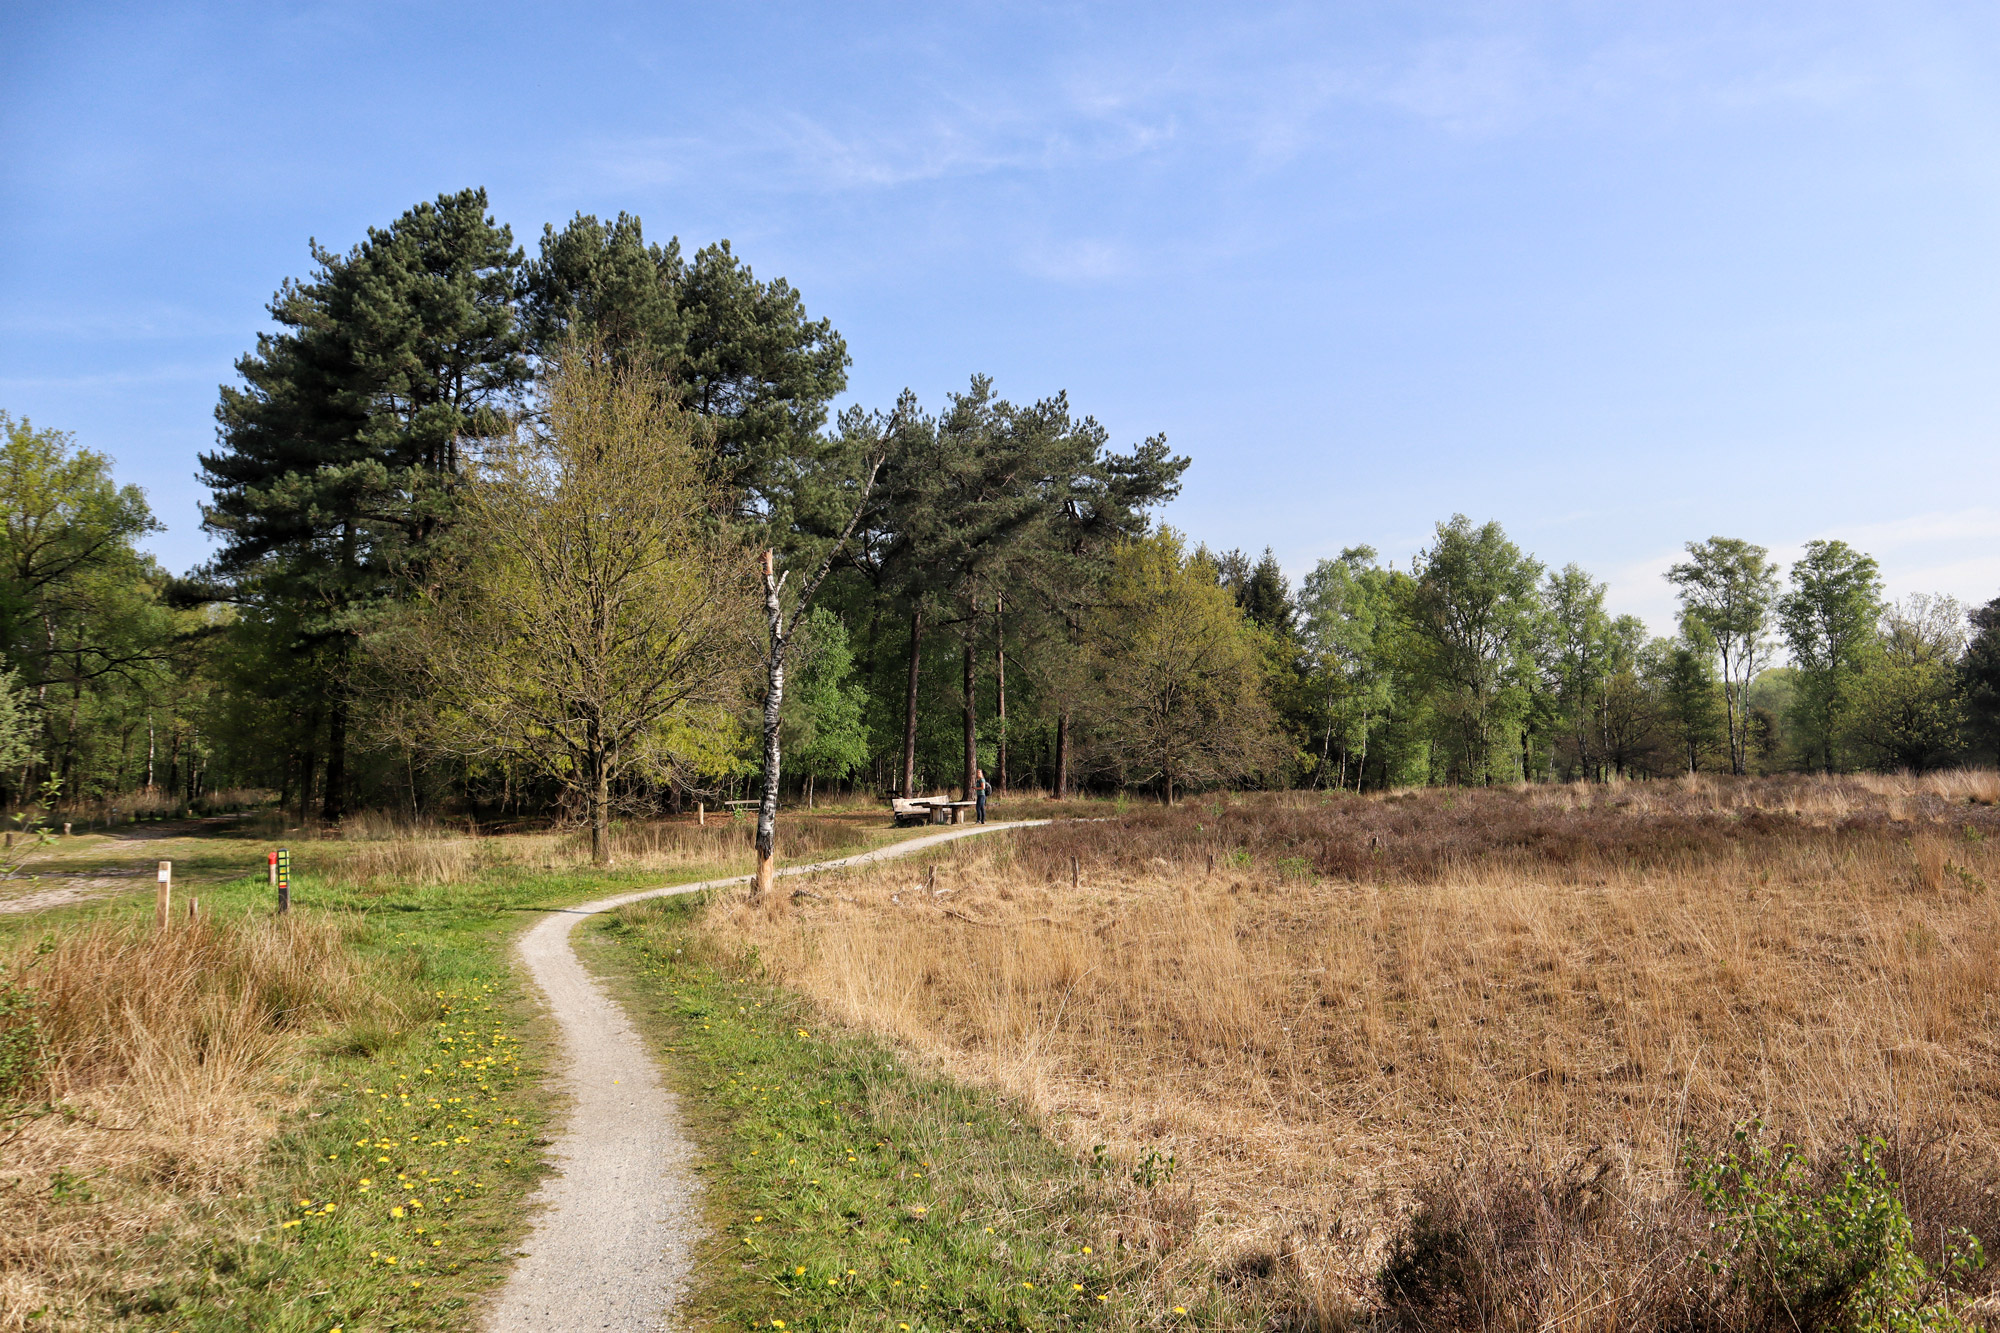 Trage Tocht Netersel